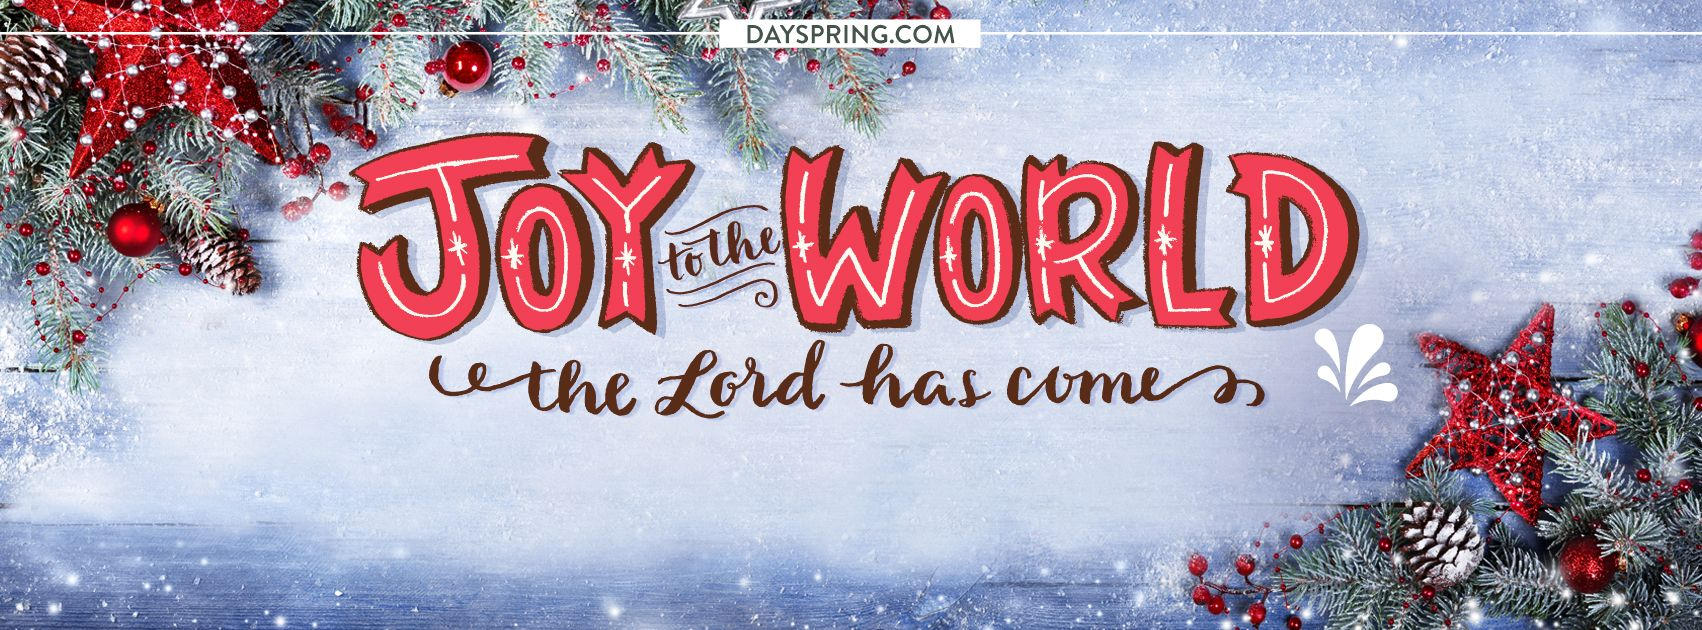 Facebook Cover Photos to Spice Up Your Profile for Christmas | A ...